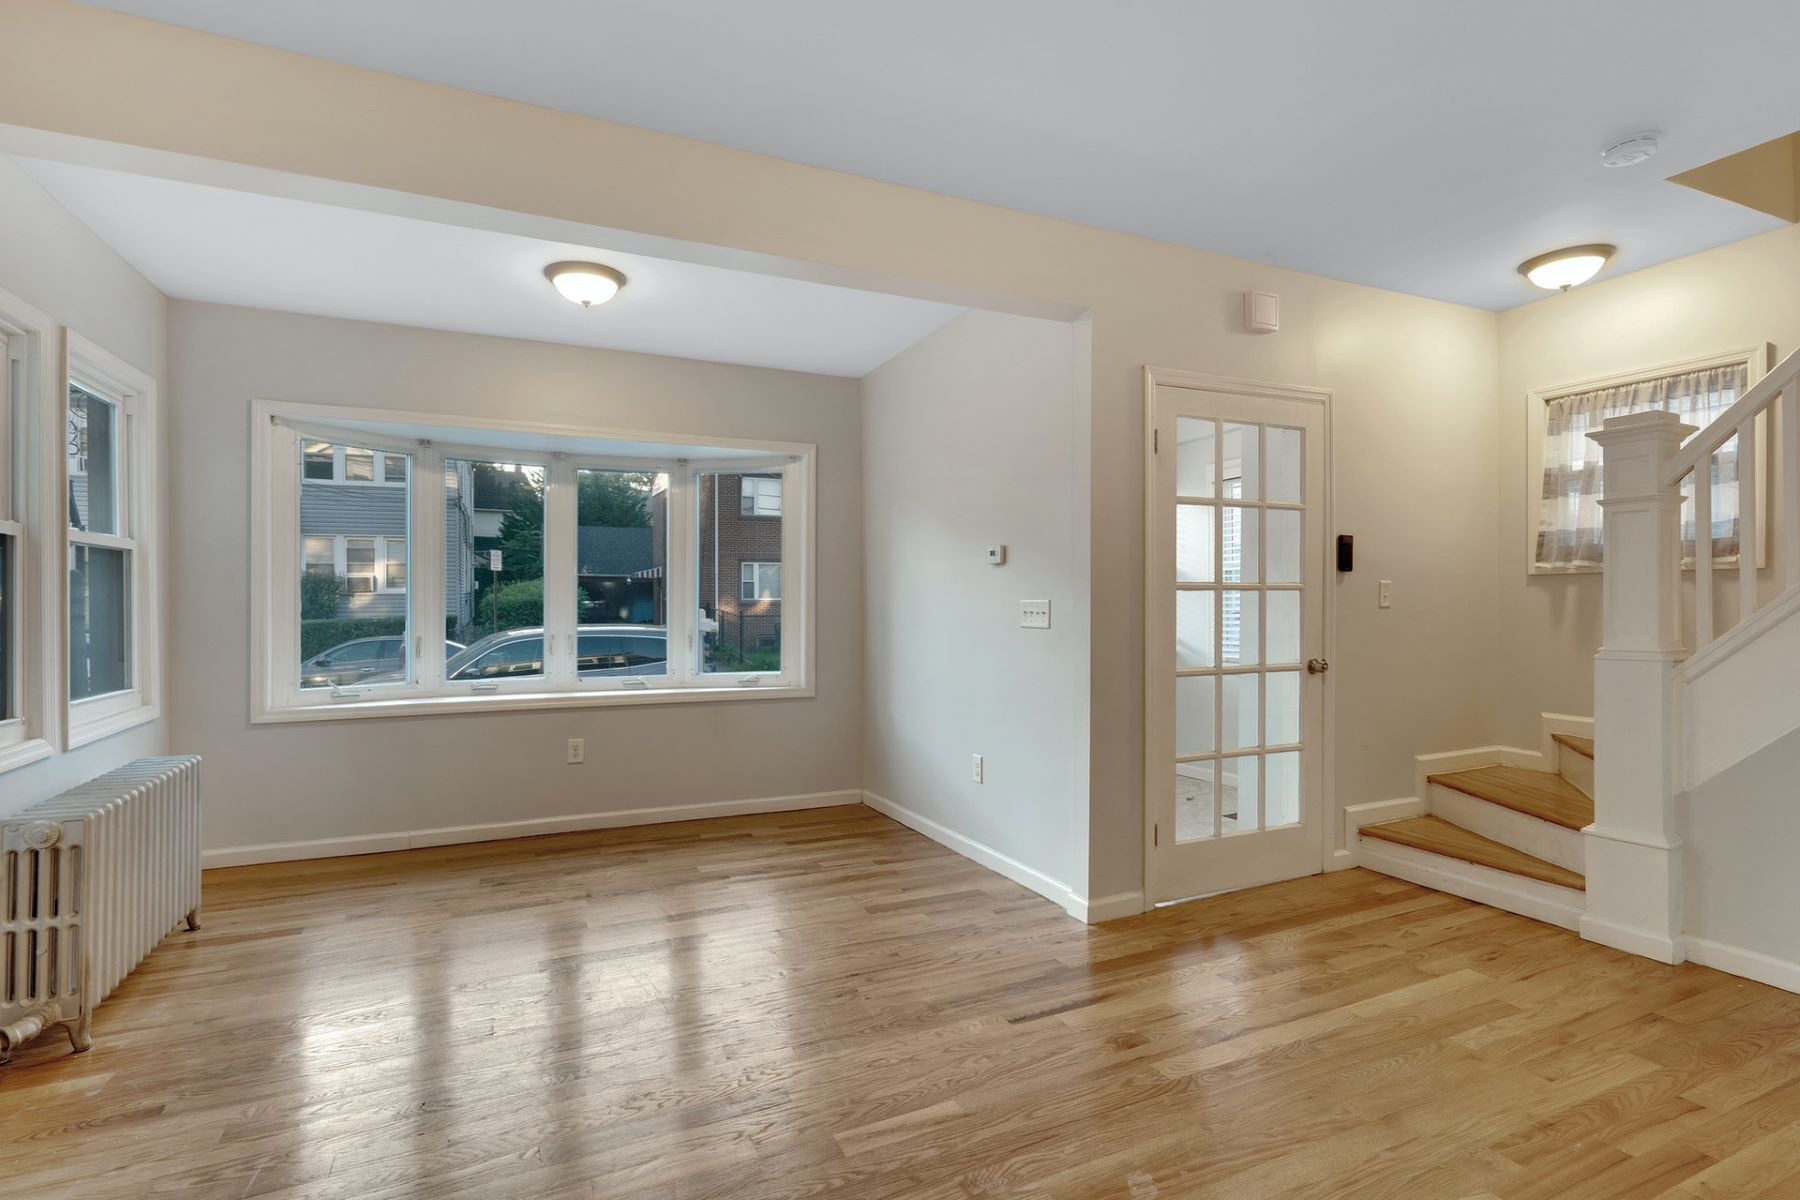 Single Family Homes for Active at Adorable bungalow home close to public transportation and shops 256 West End Ave Newark, New Jersey 07106 United States